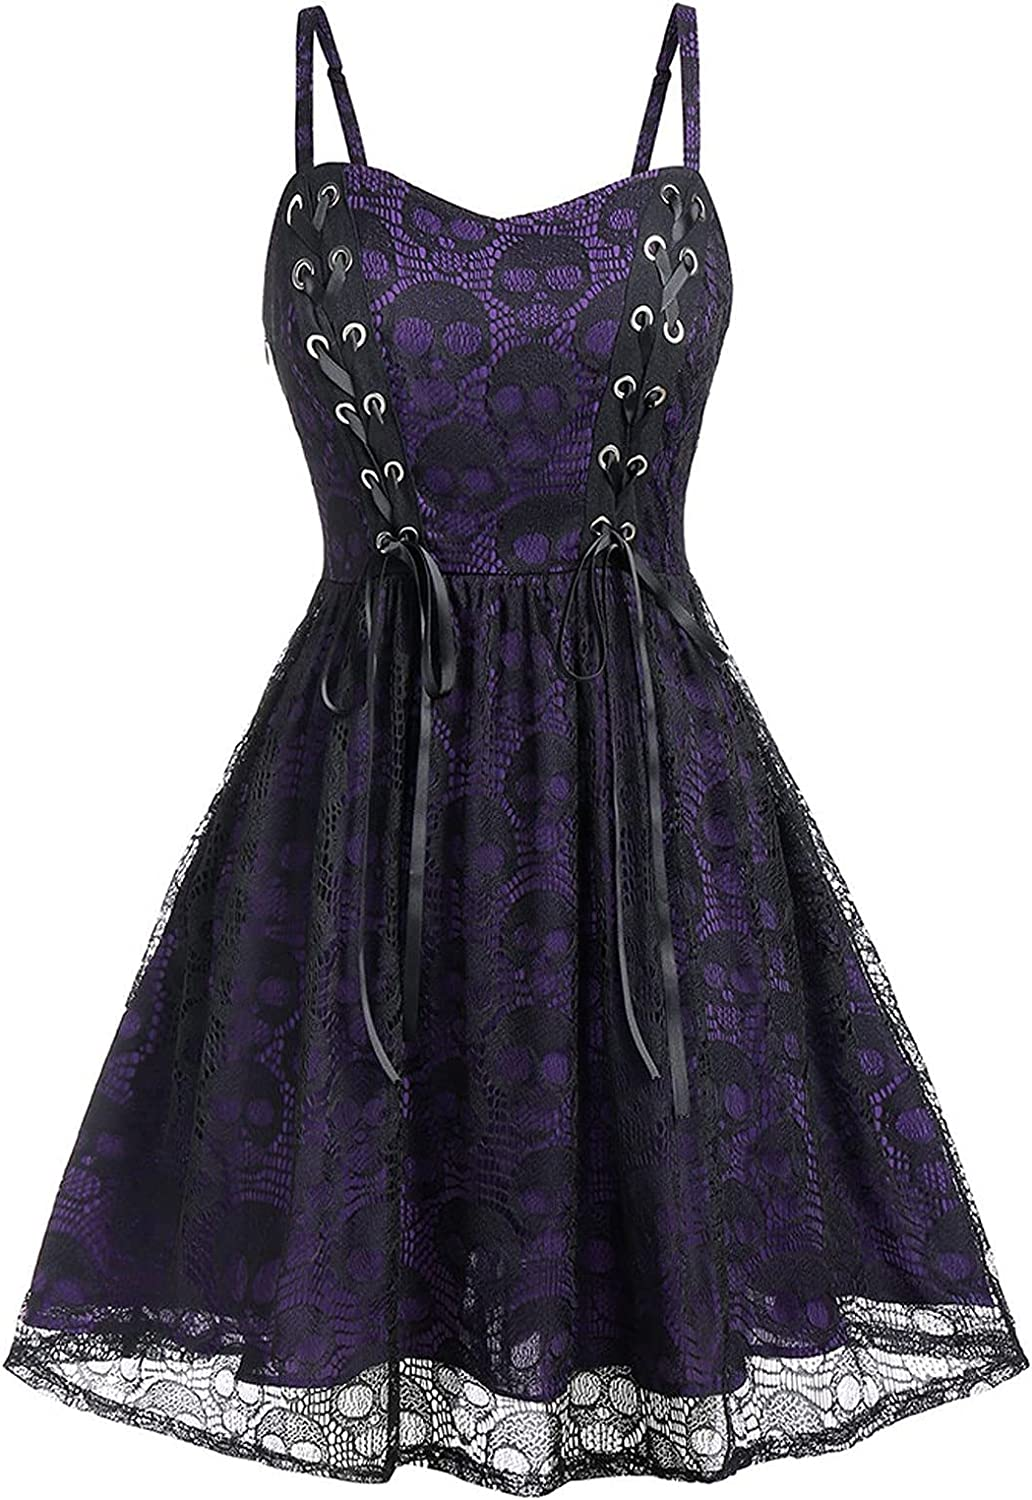 Cheap FDDFG Gothic Ladies Dress Halloween Challenge the lowest price of Japan ☆ Camisol Mesh Sleeveless Lace